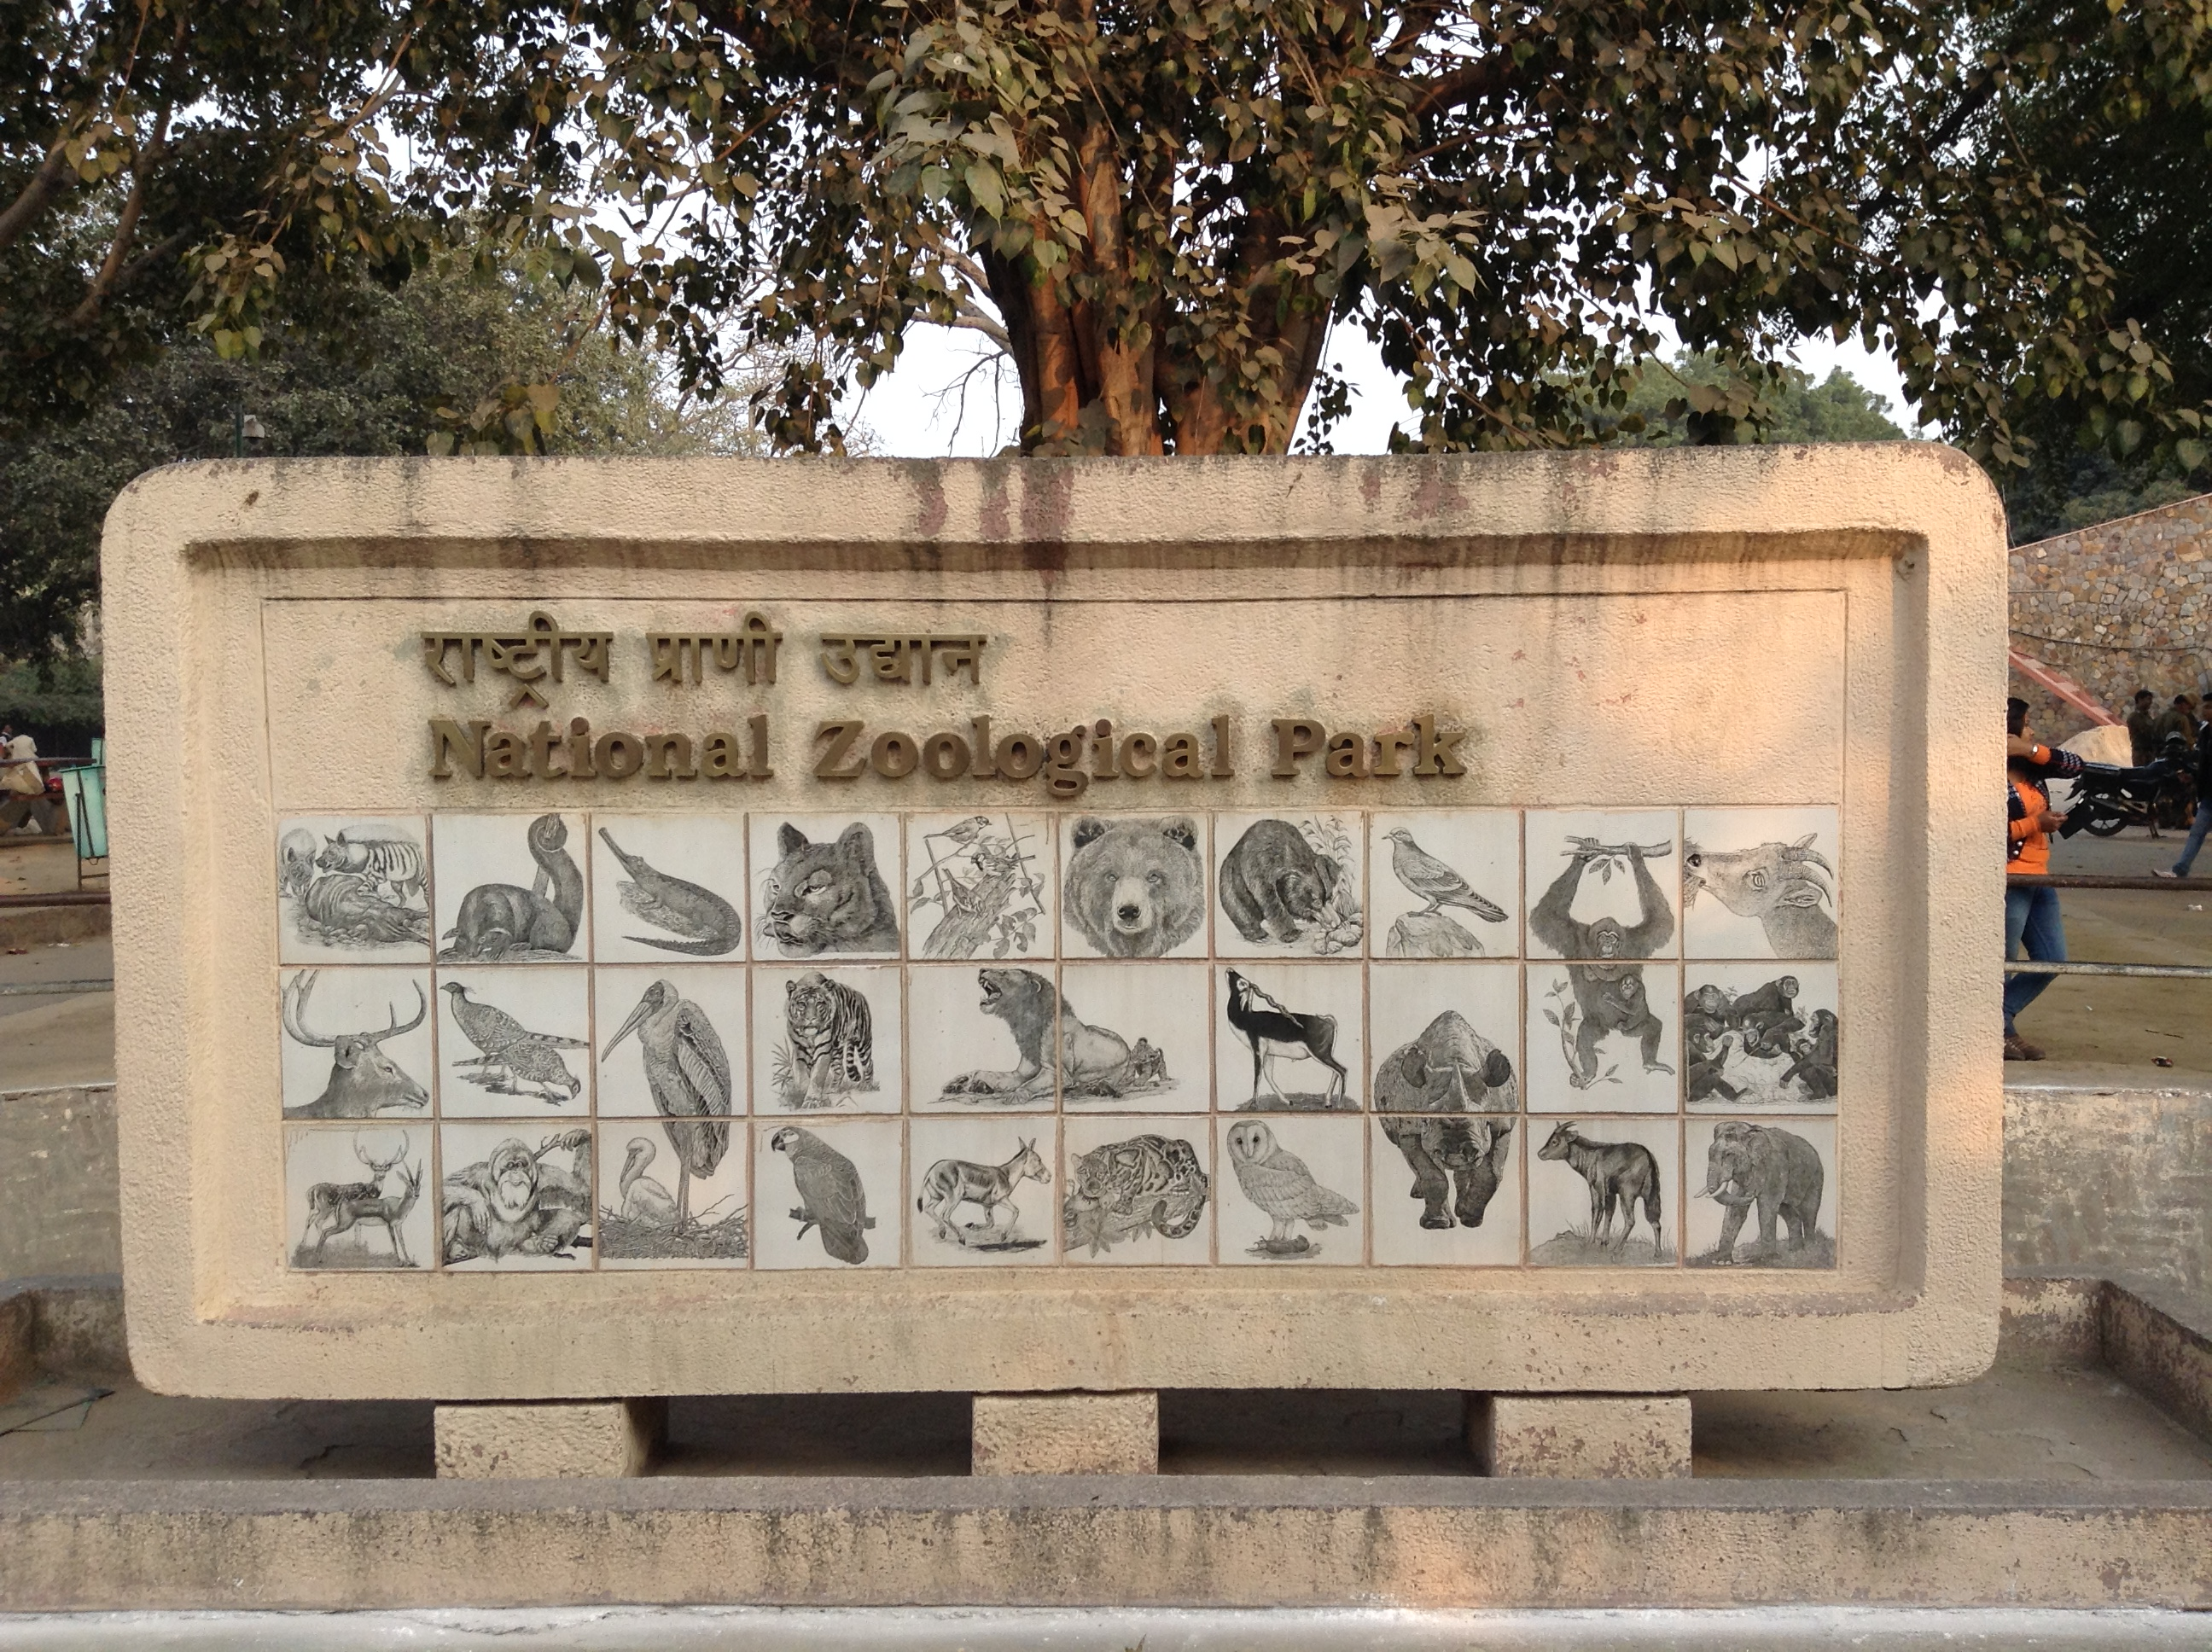 National Zoological Park Delhi, IMG_0242.jpg